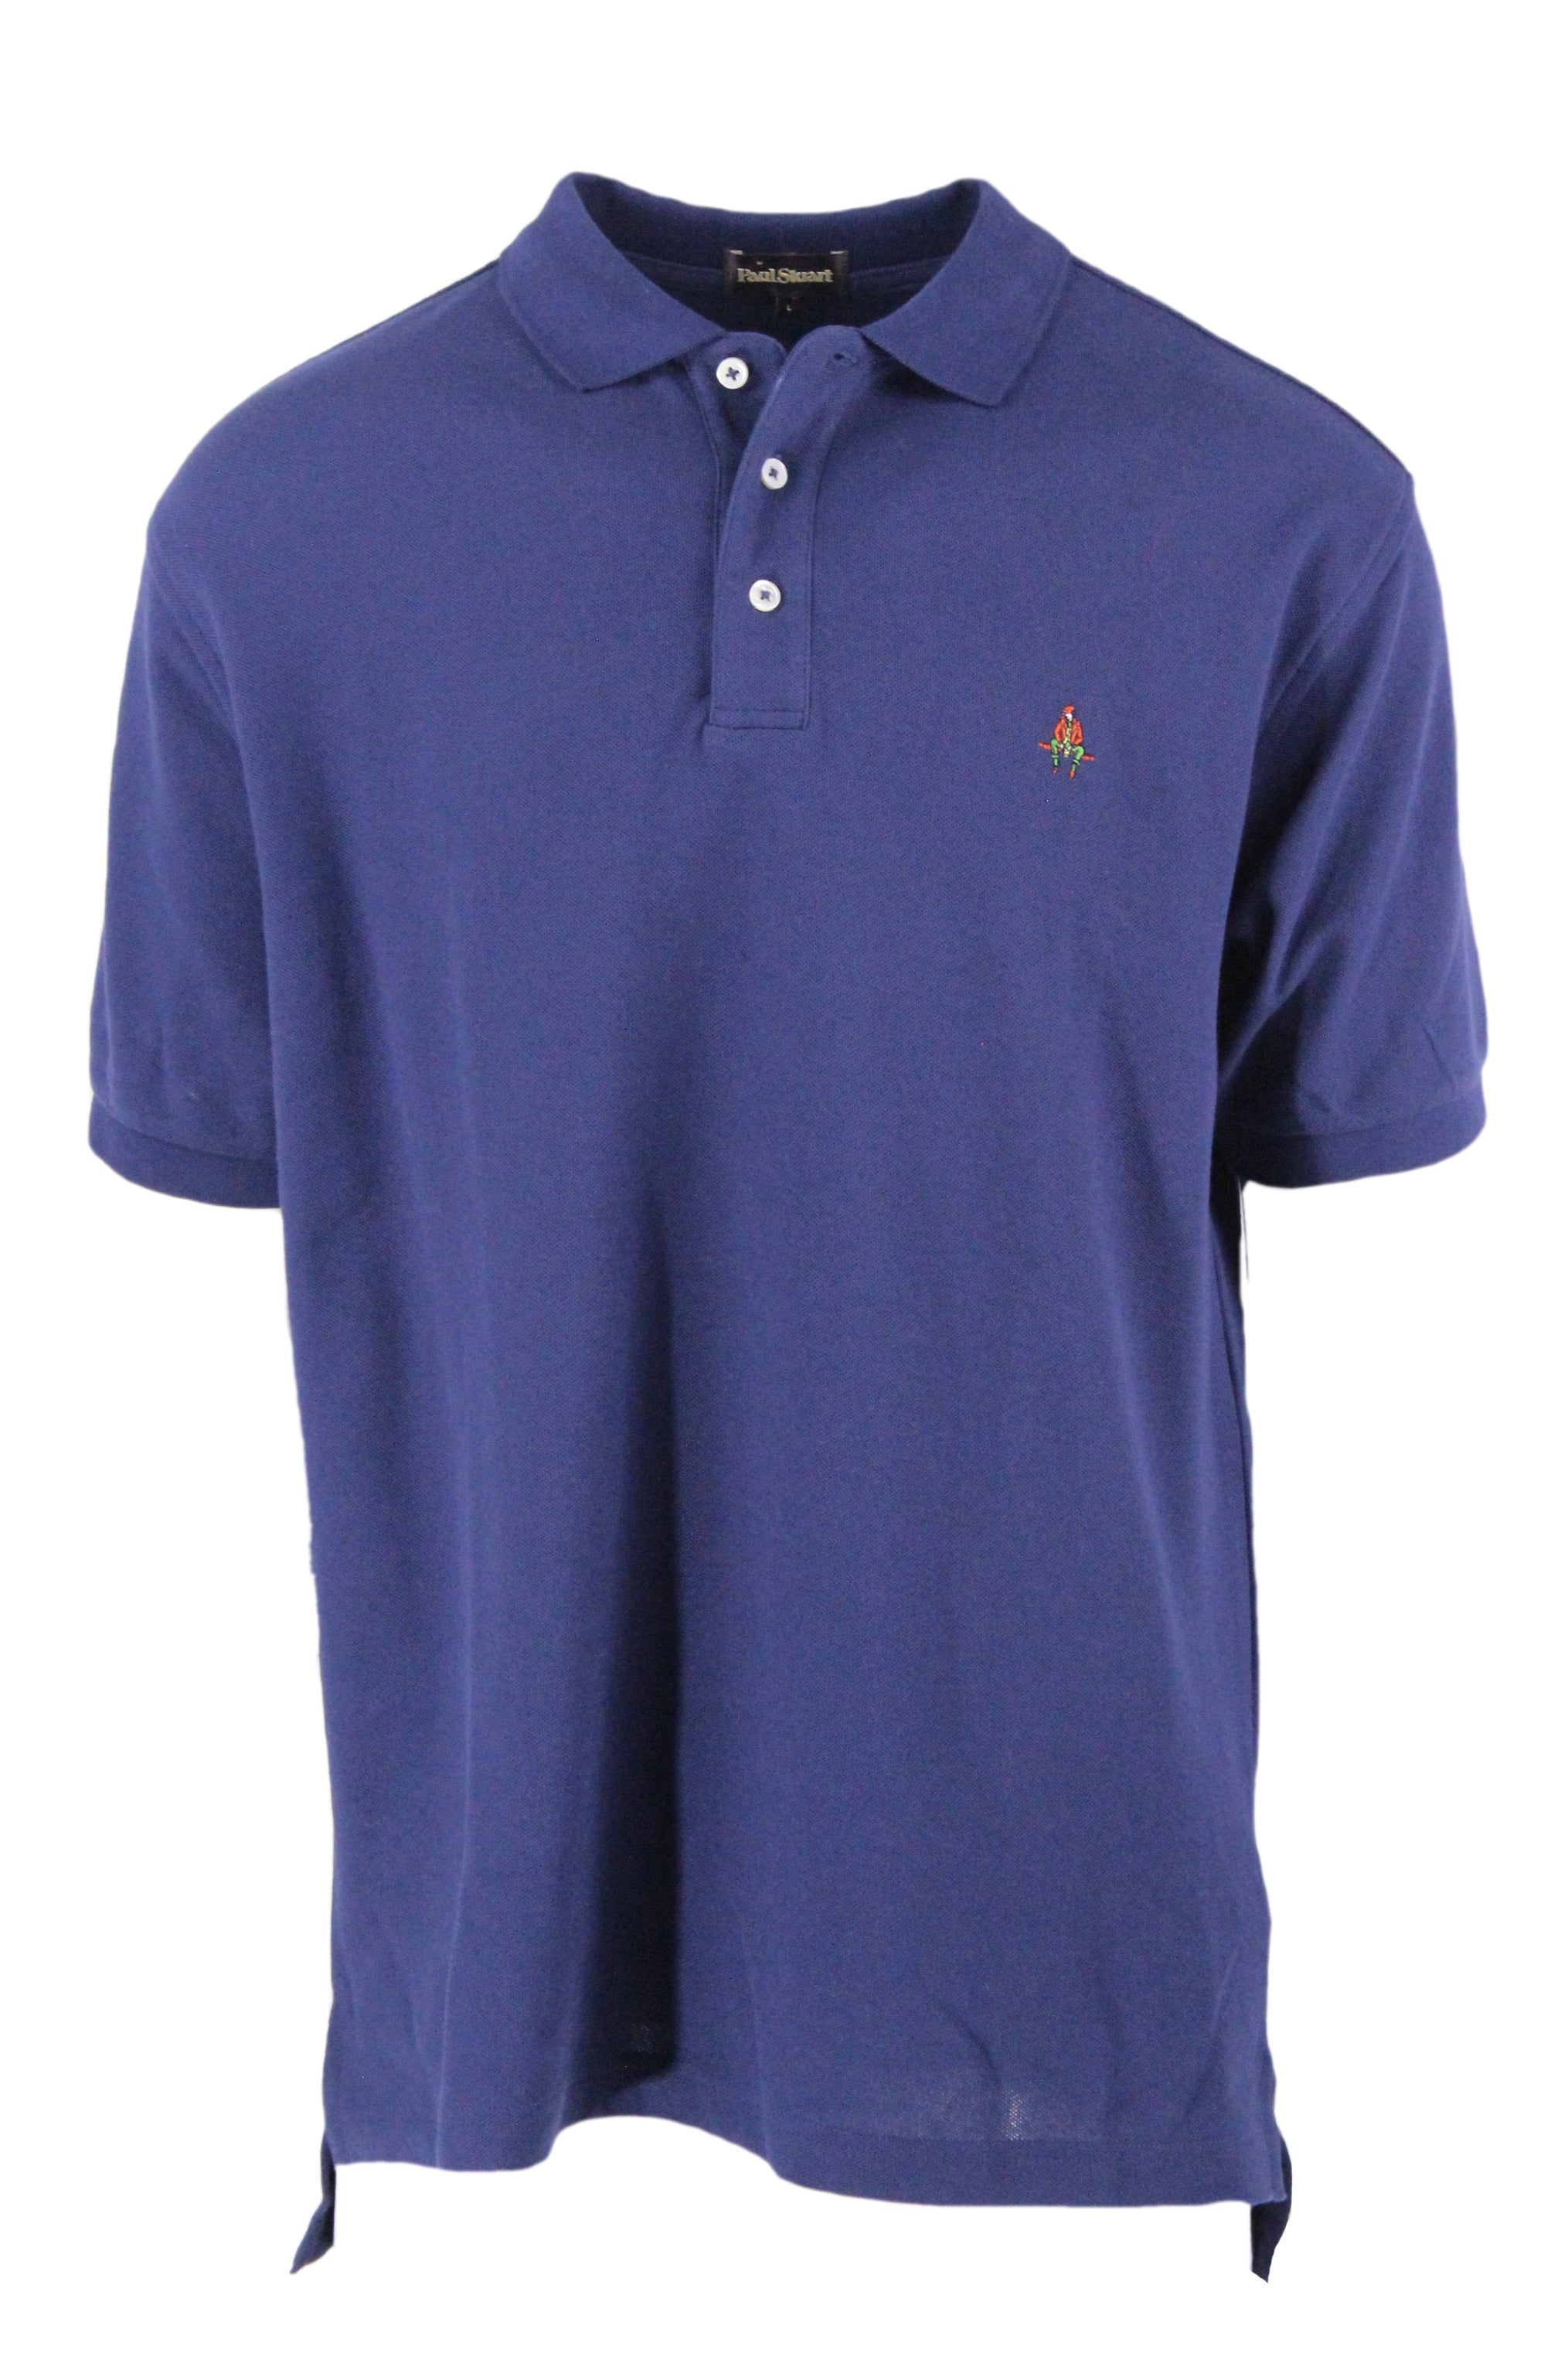 paul stuart navy short sleeve polo shirt. features graphic embroidered at left breast, three button placket with ribbed collar, cuffs, and hem.